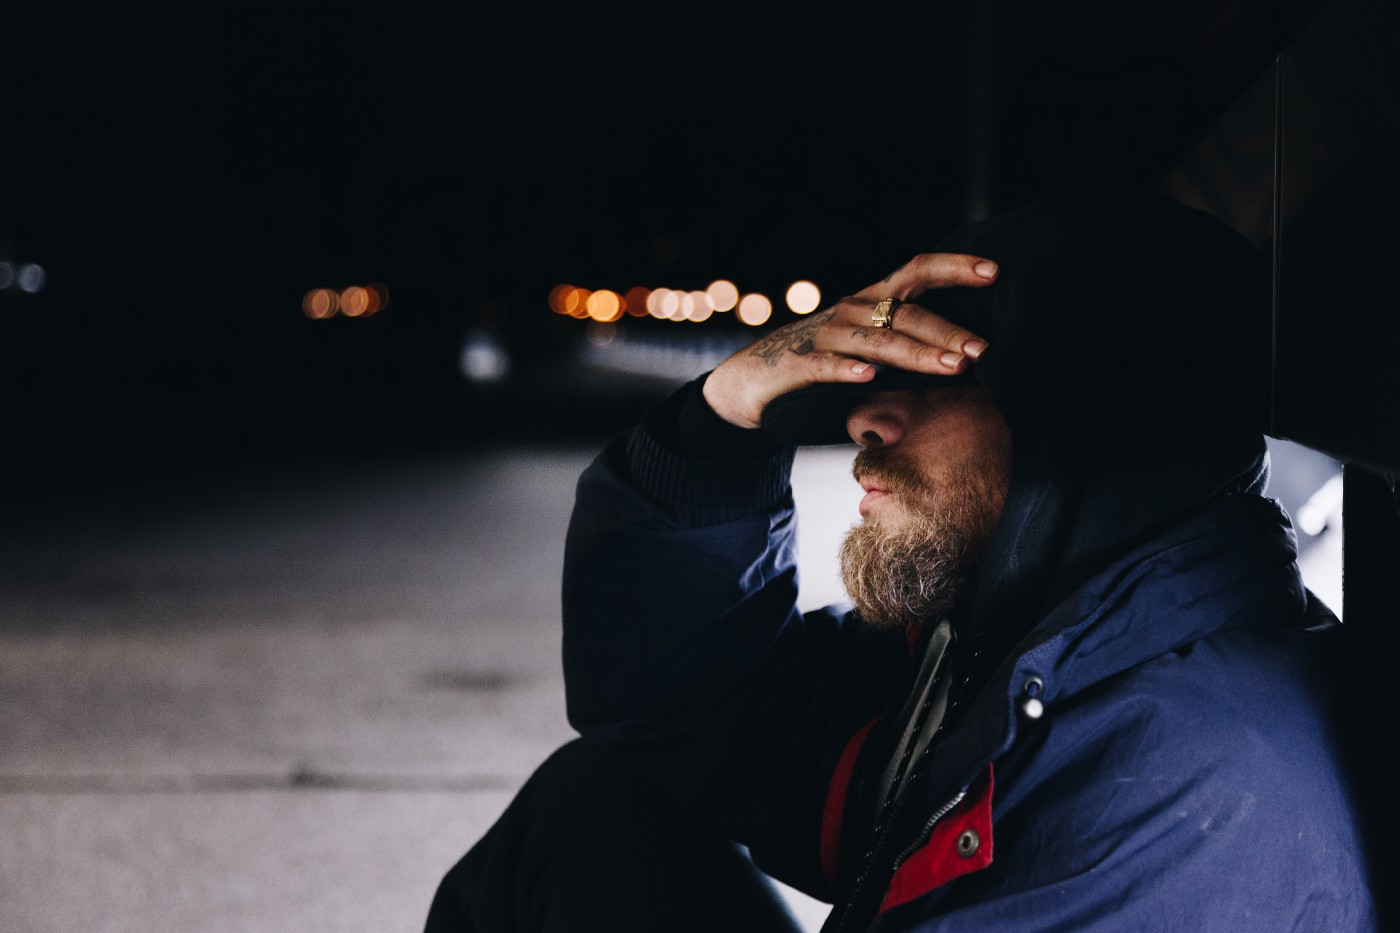 Photo of a man sitting on the ground outside at night with his head in his hand.